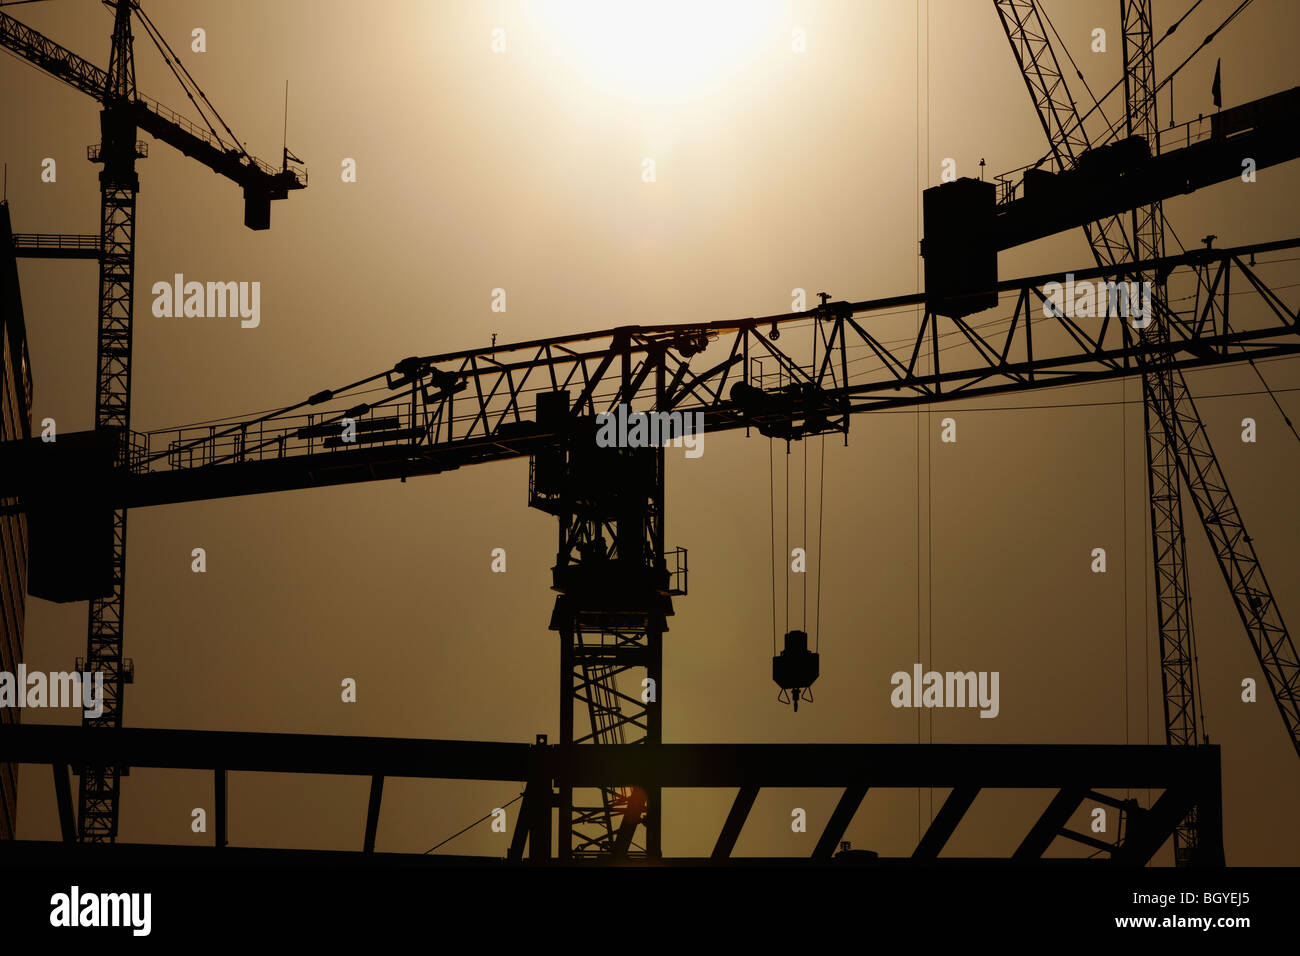 Construction of high-rise building - Stock Image